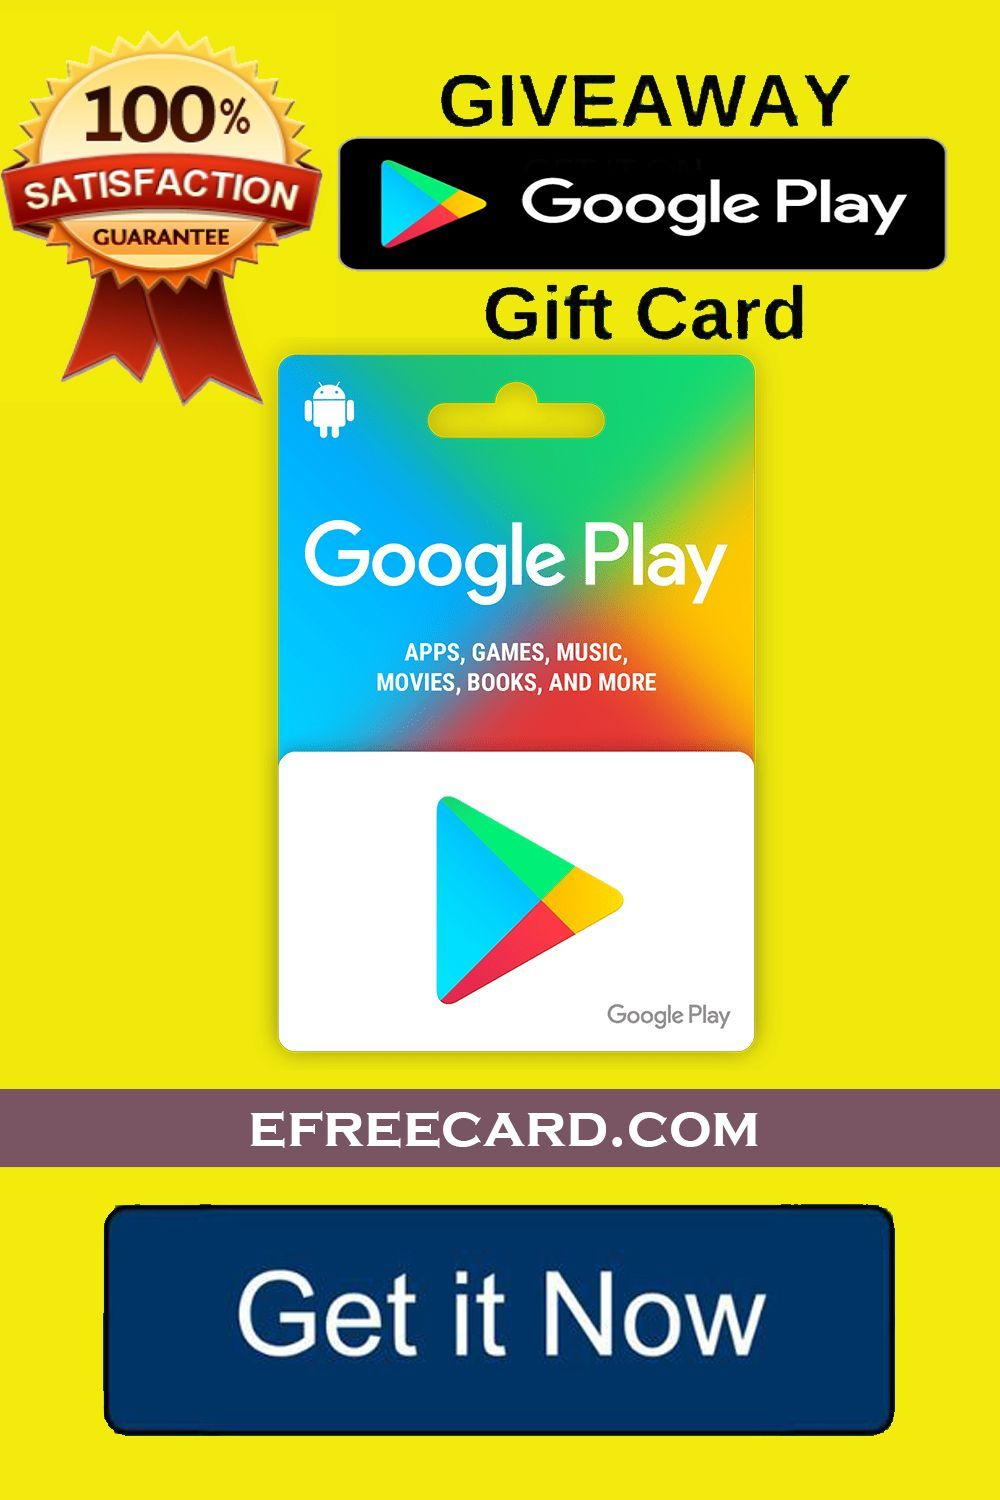 Win Playstore Gift Card Free Get A Googleplay Gift Card Free It S Easy To Get Working 100 To Get This Great Offer You Need To Go To The Link Di 2020